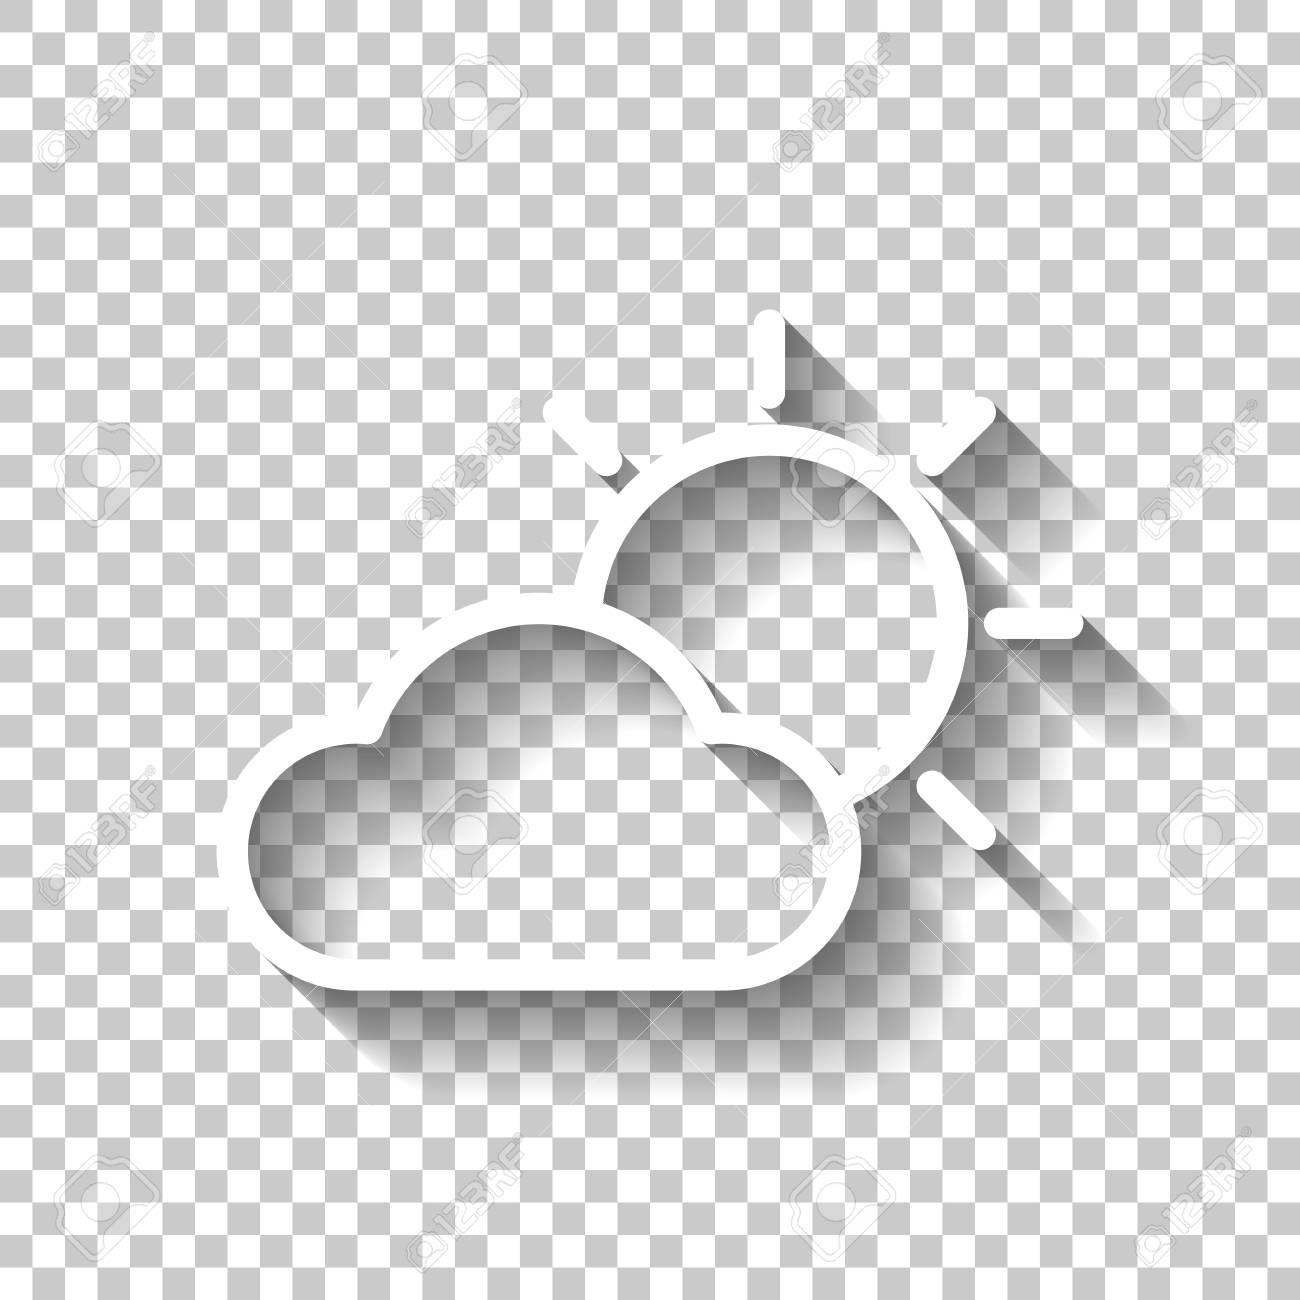 Sun And Cloud Weather Symbol Linear Icon With Thin Outline White Icon With Shadow On Transparent Background Sponsored Ad Symbol Linear Icon Sun V 2020 G